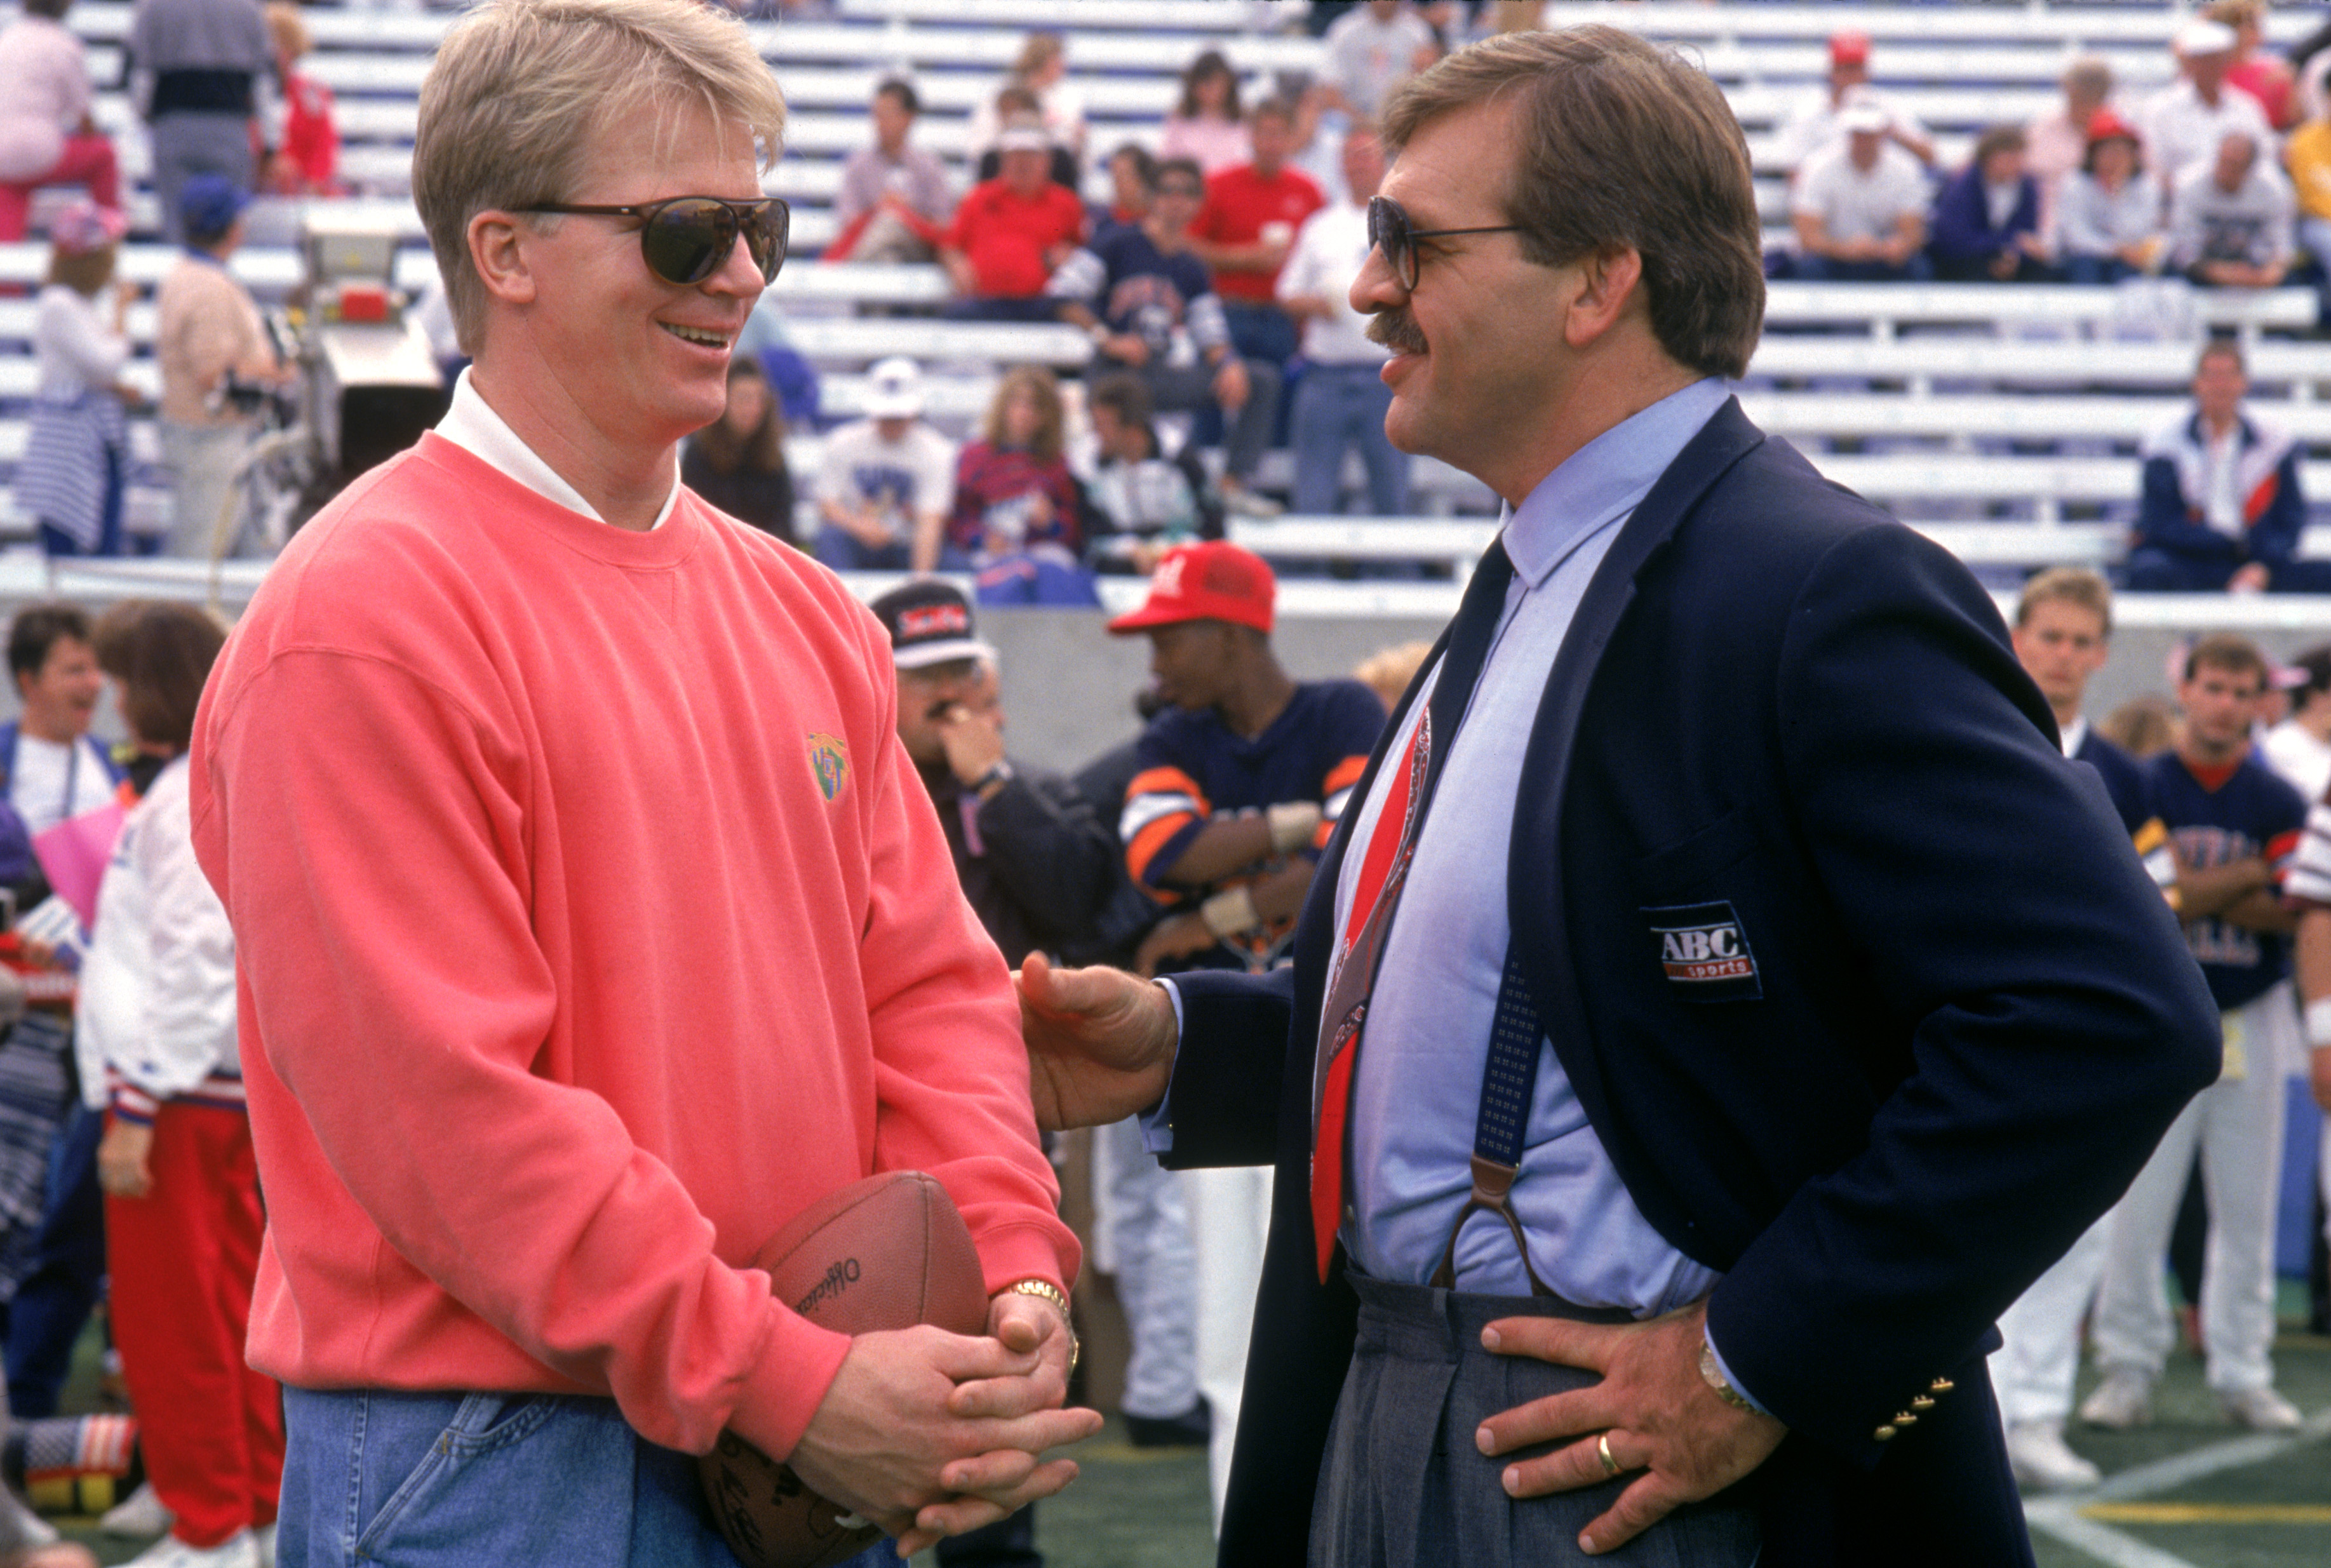 TAMPA, FL - JANUARY 27:  Injured quarterback Phil Simms of the New York Giants talks to ABC TV announcer Dan Dierdorff before the game against the Buffalo Bills during Super Bowl XXV at Tampa Stadium on January 27, 1991 in Tampa, Florida. The Giants defea